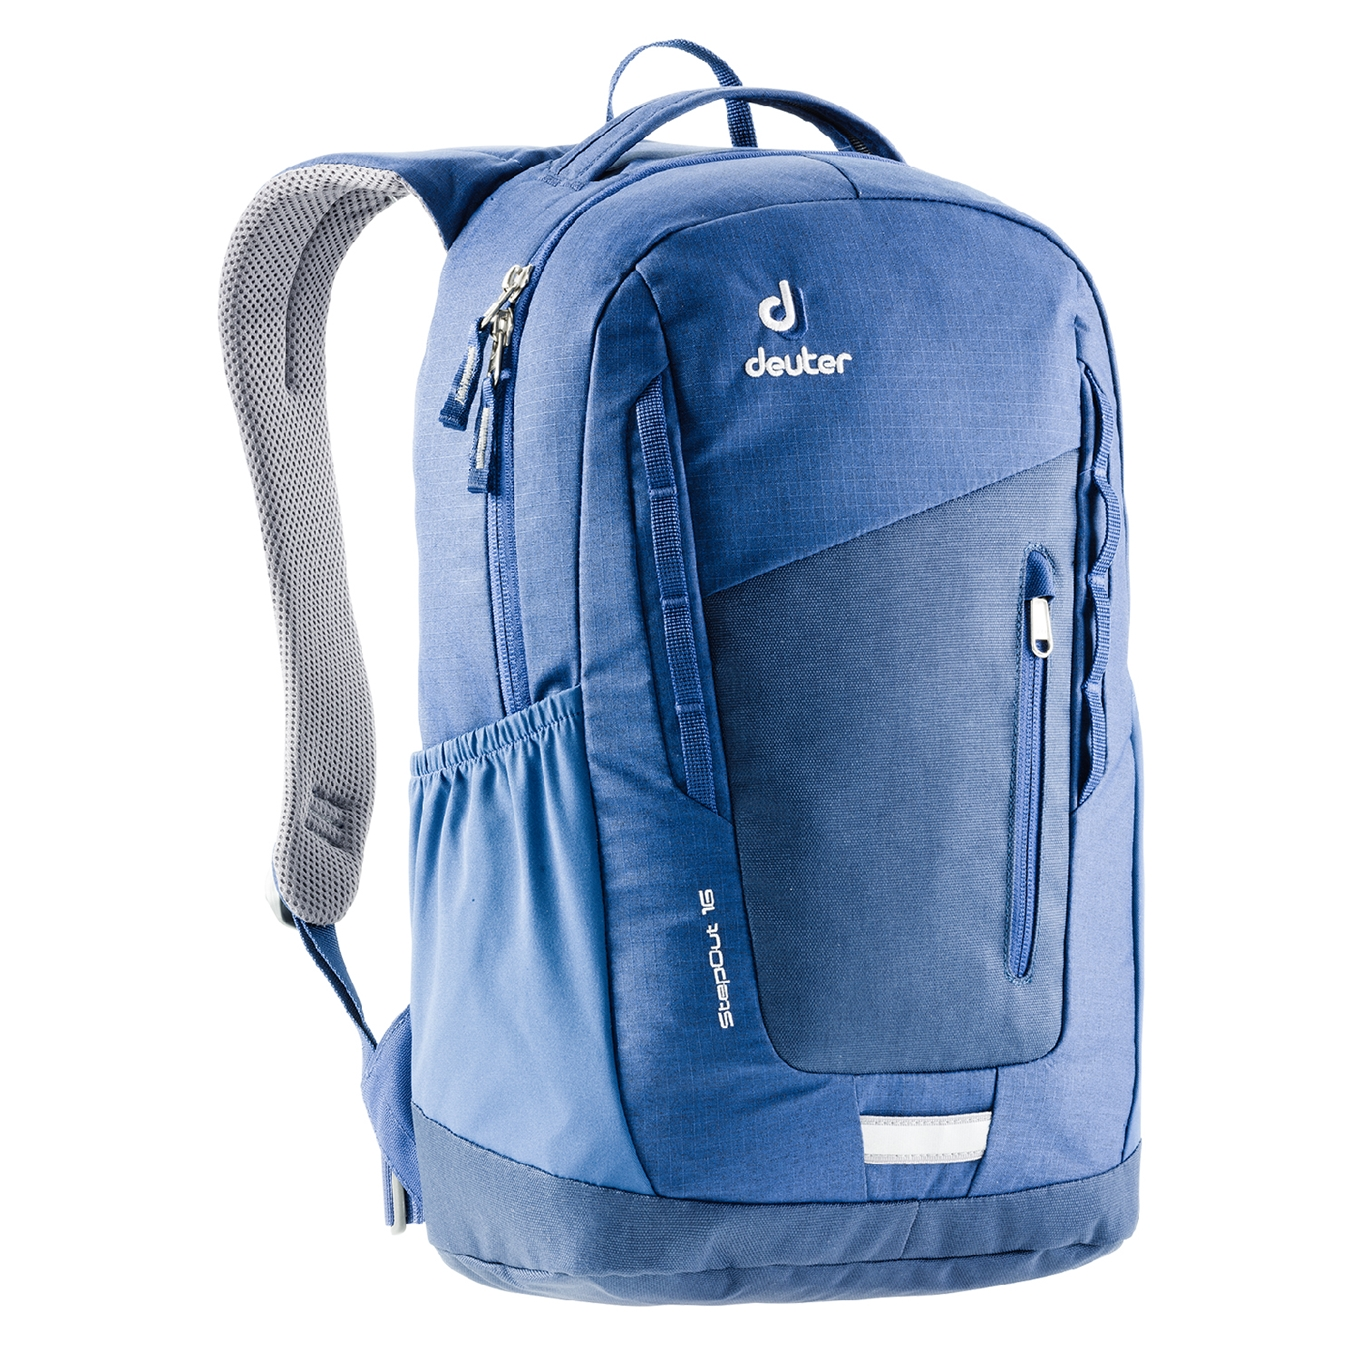 Deuter StepOut 16 Daypack midnight/steel backpack